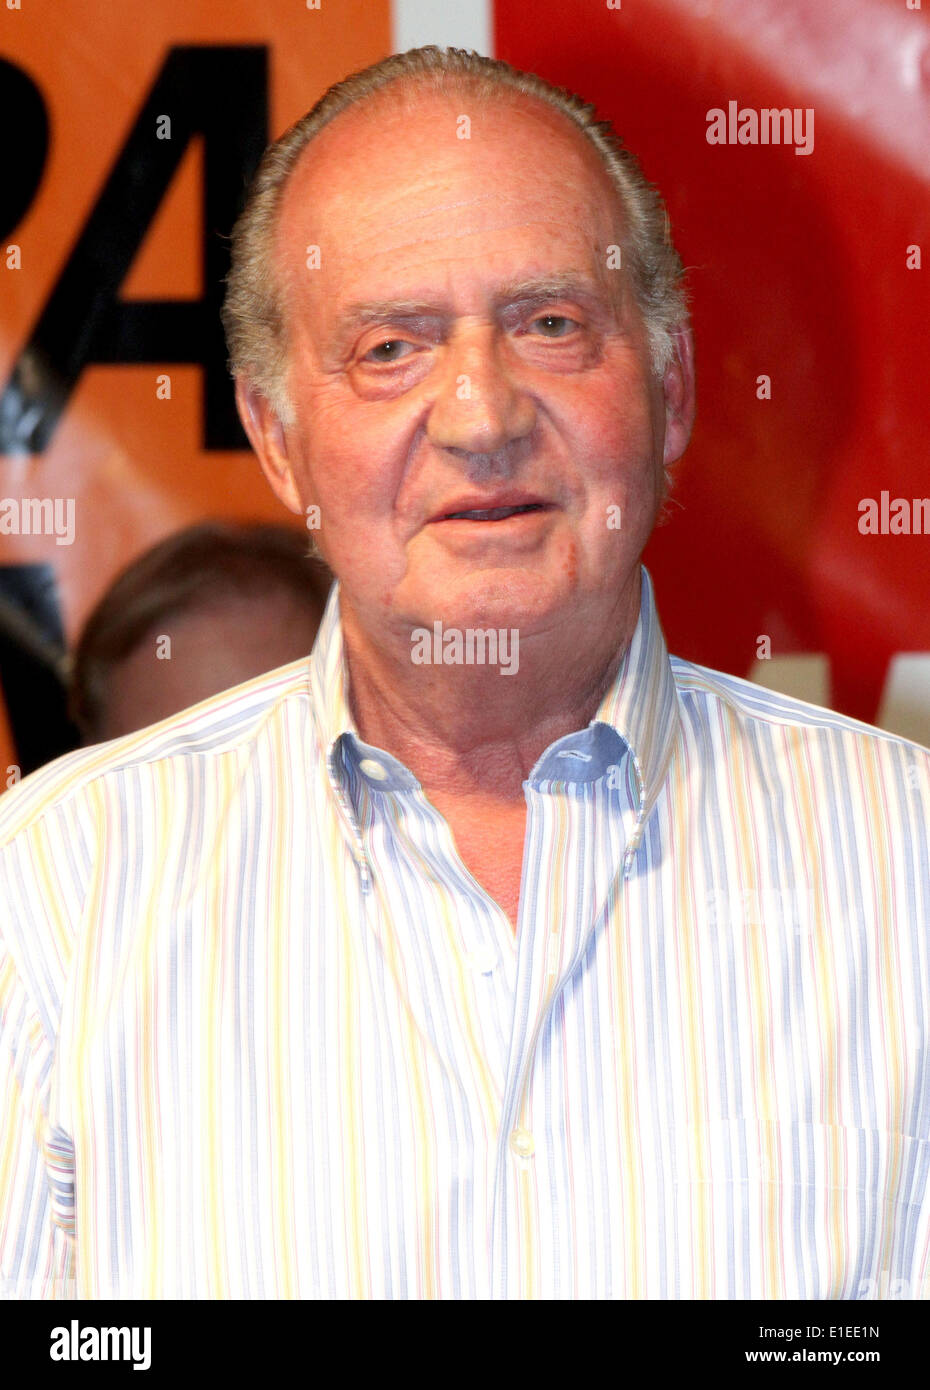 Spanish King Juan Carlos during the award ceremony of the 29th Copa del Rey sailing race in Palma de Mallorca, the 29th edition of the King's Cup (Copa del Rey), 8th August, 2010. Photo Albert Nieboer  NETHERLANDS OUT - Stock Image